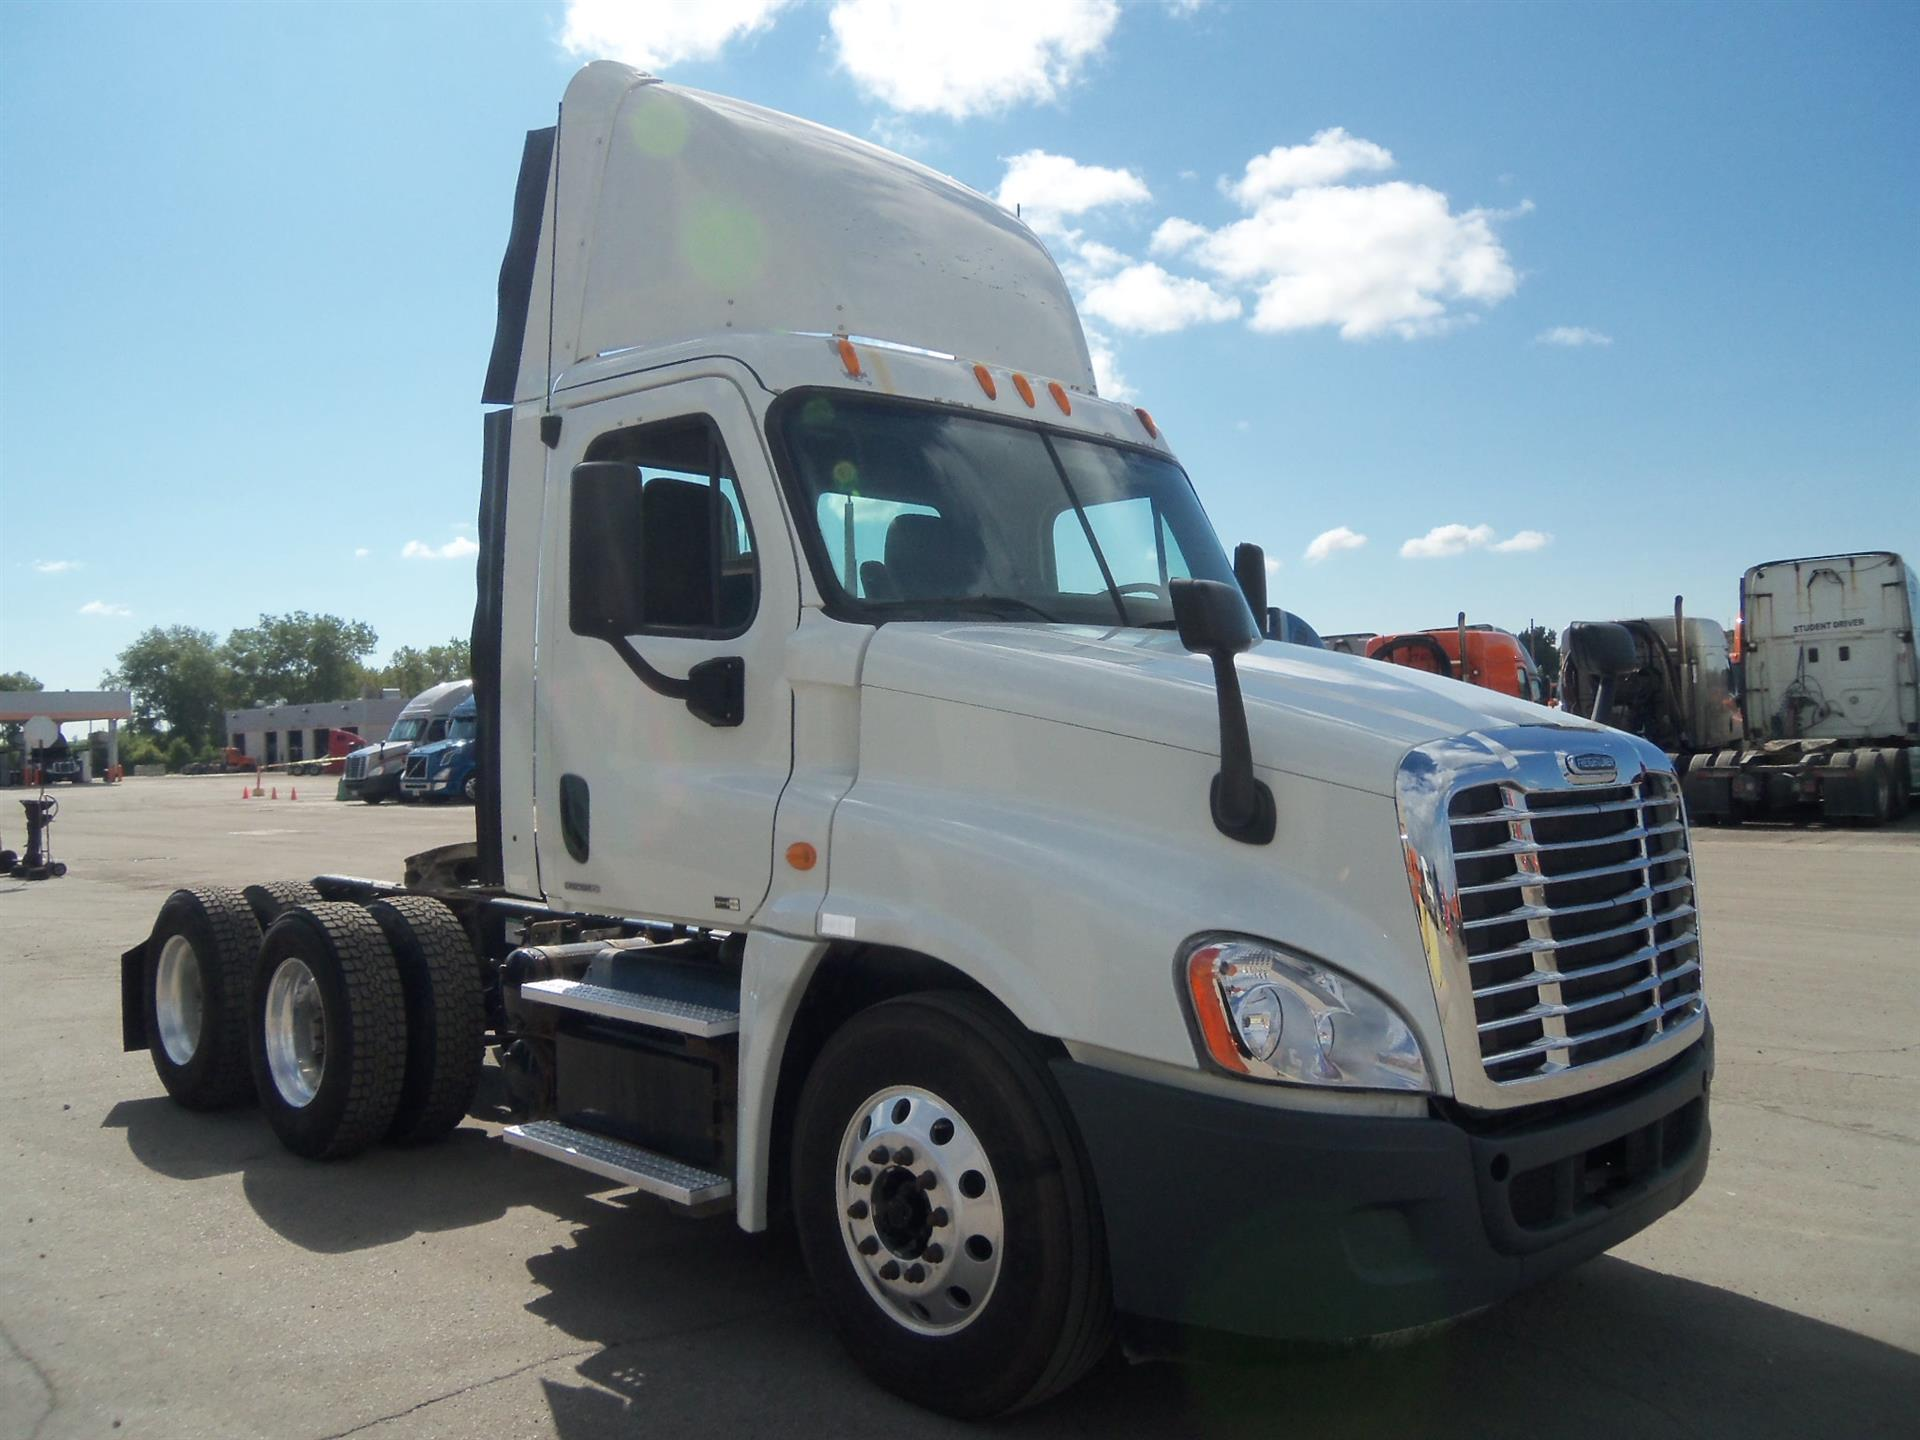 USED 2012 FREIGHTLINER CASCADIA DAYCAB TRUCK #82101